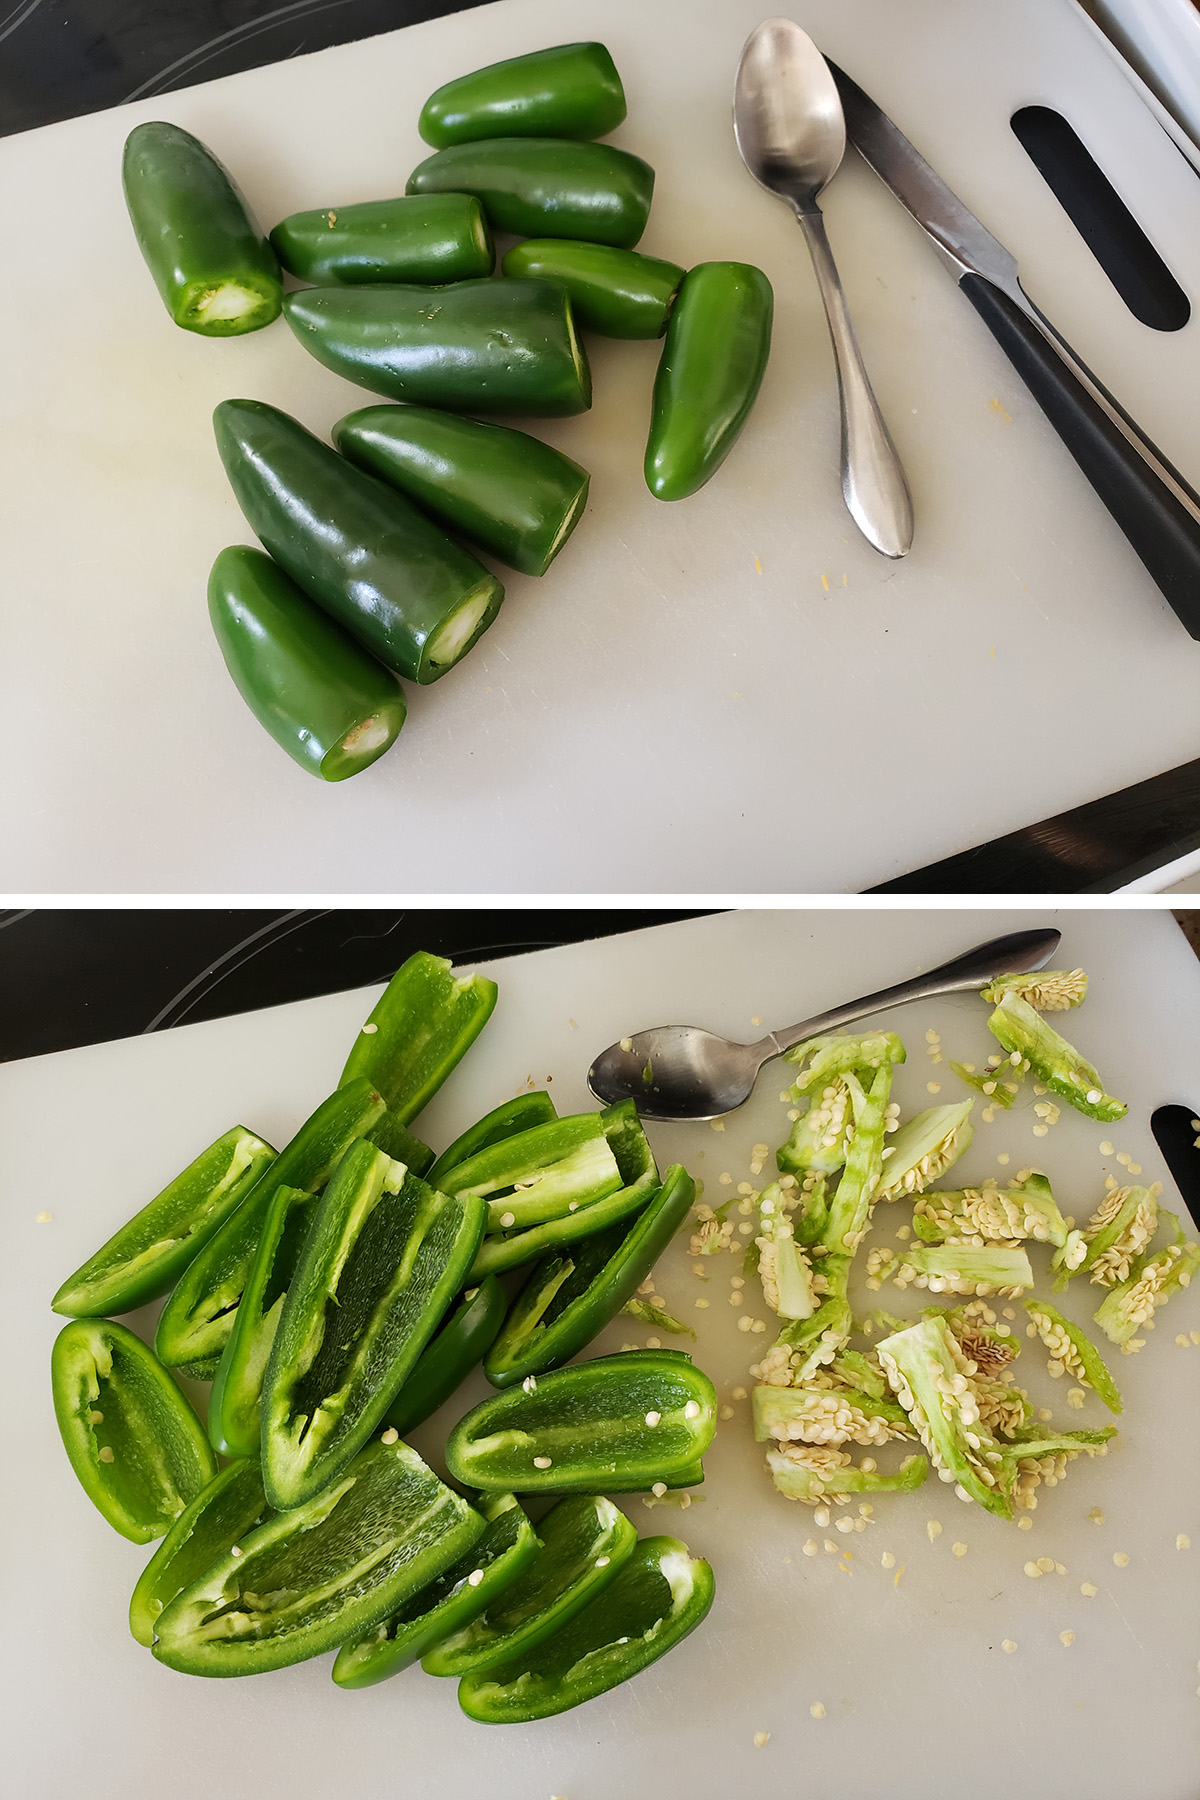 A two part compilation image showing jalapenos on a cutting board, before and after being cut in half and scooped out.